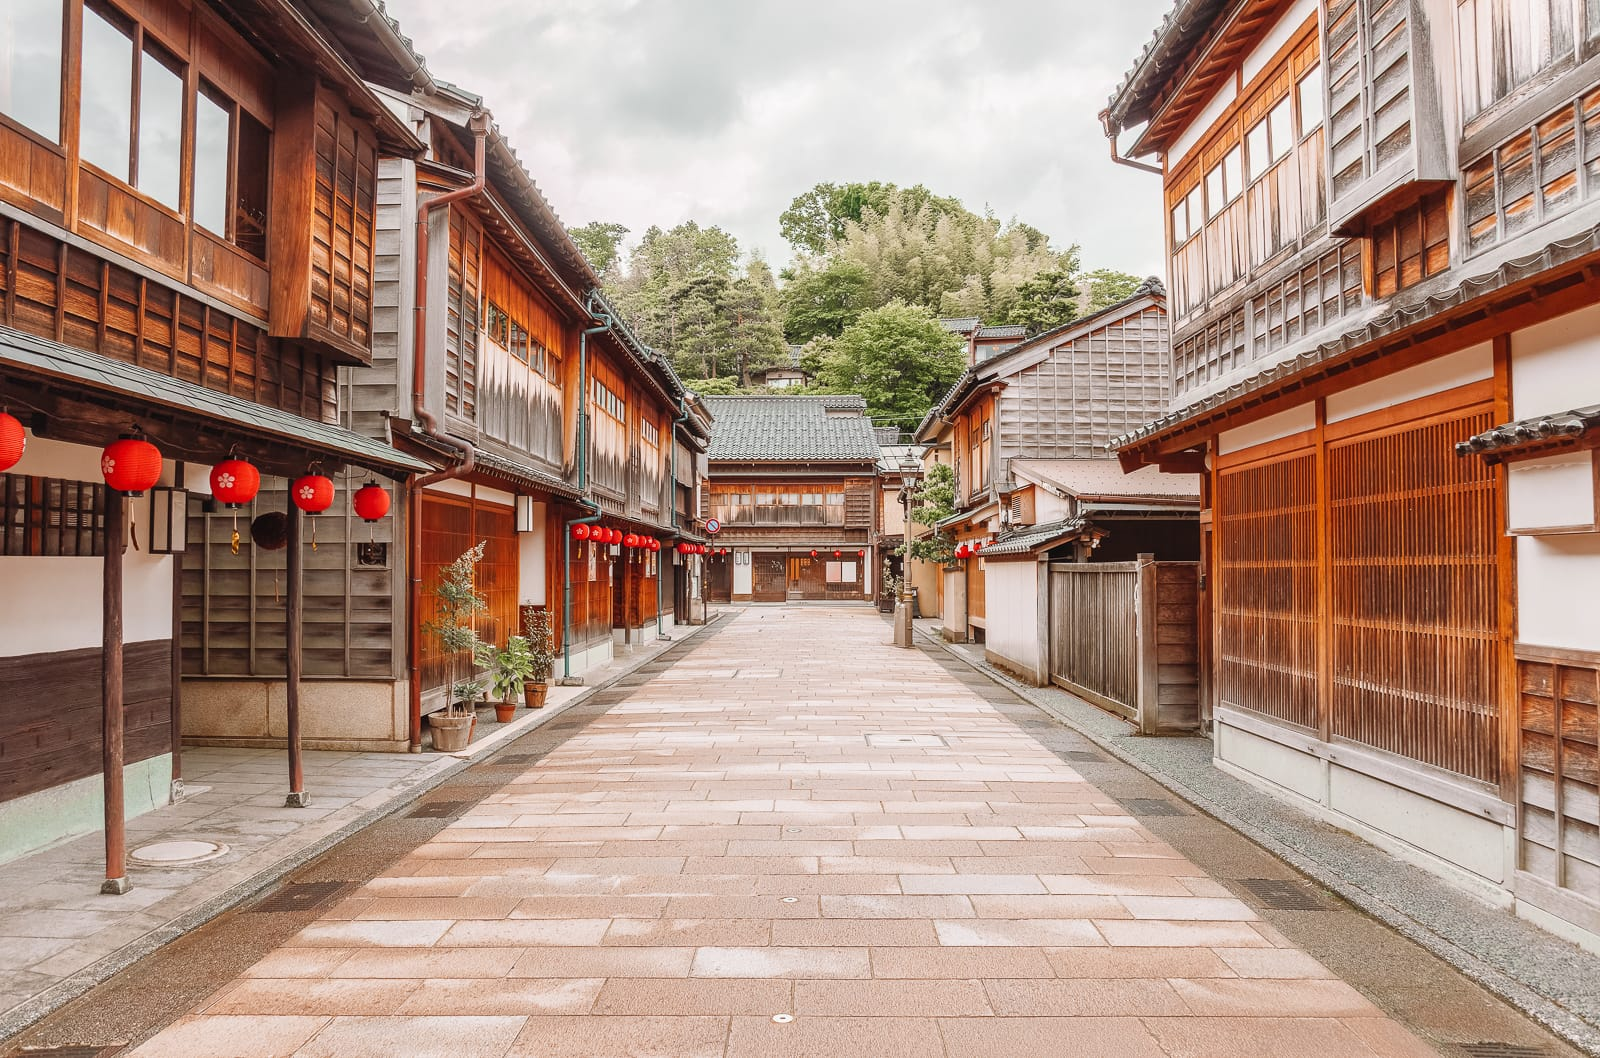 10 Best Towns And Cities To Visit In Japan (4)